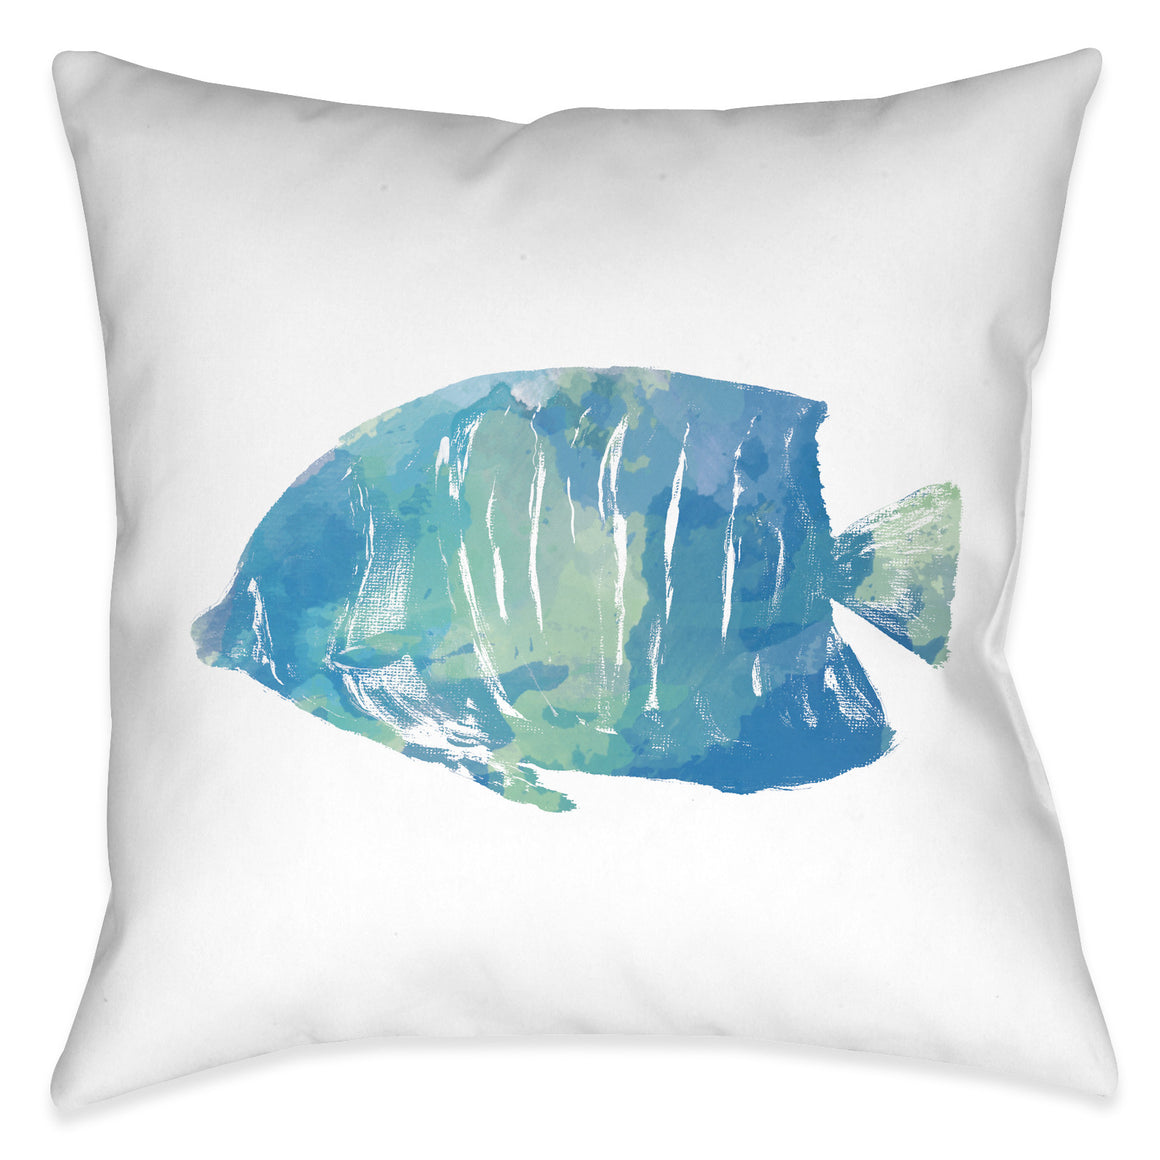 Watercolor Fish II Outdoor Decorative Pillow